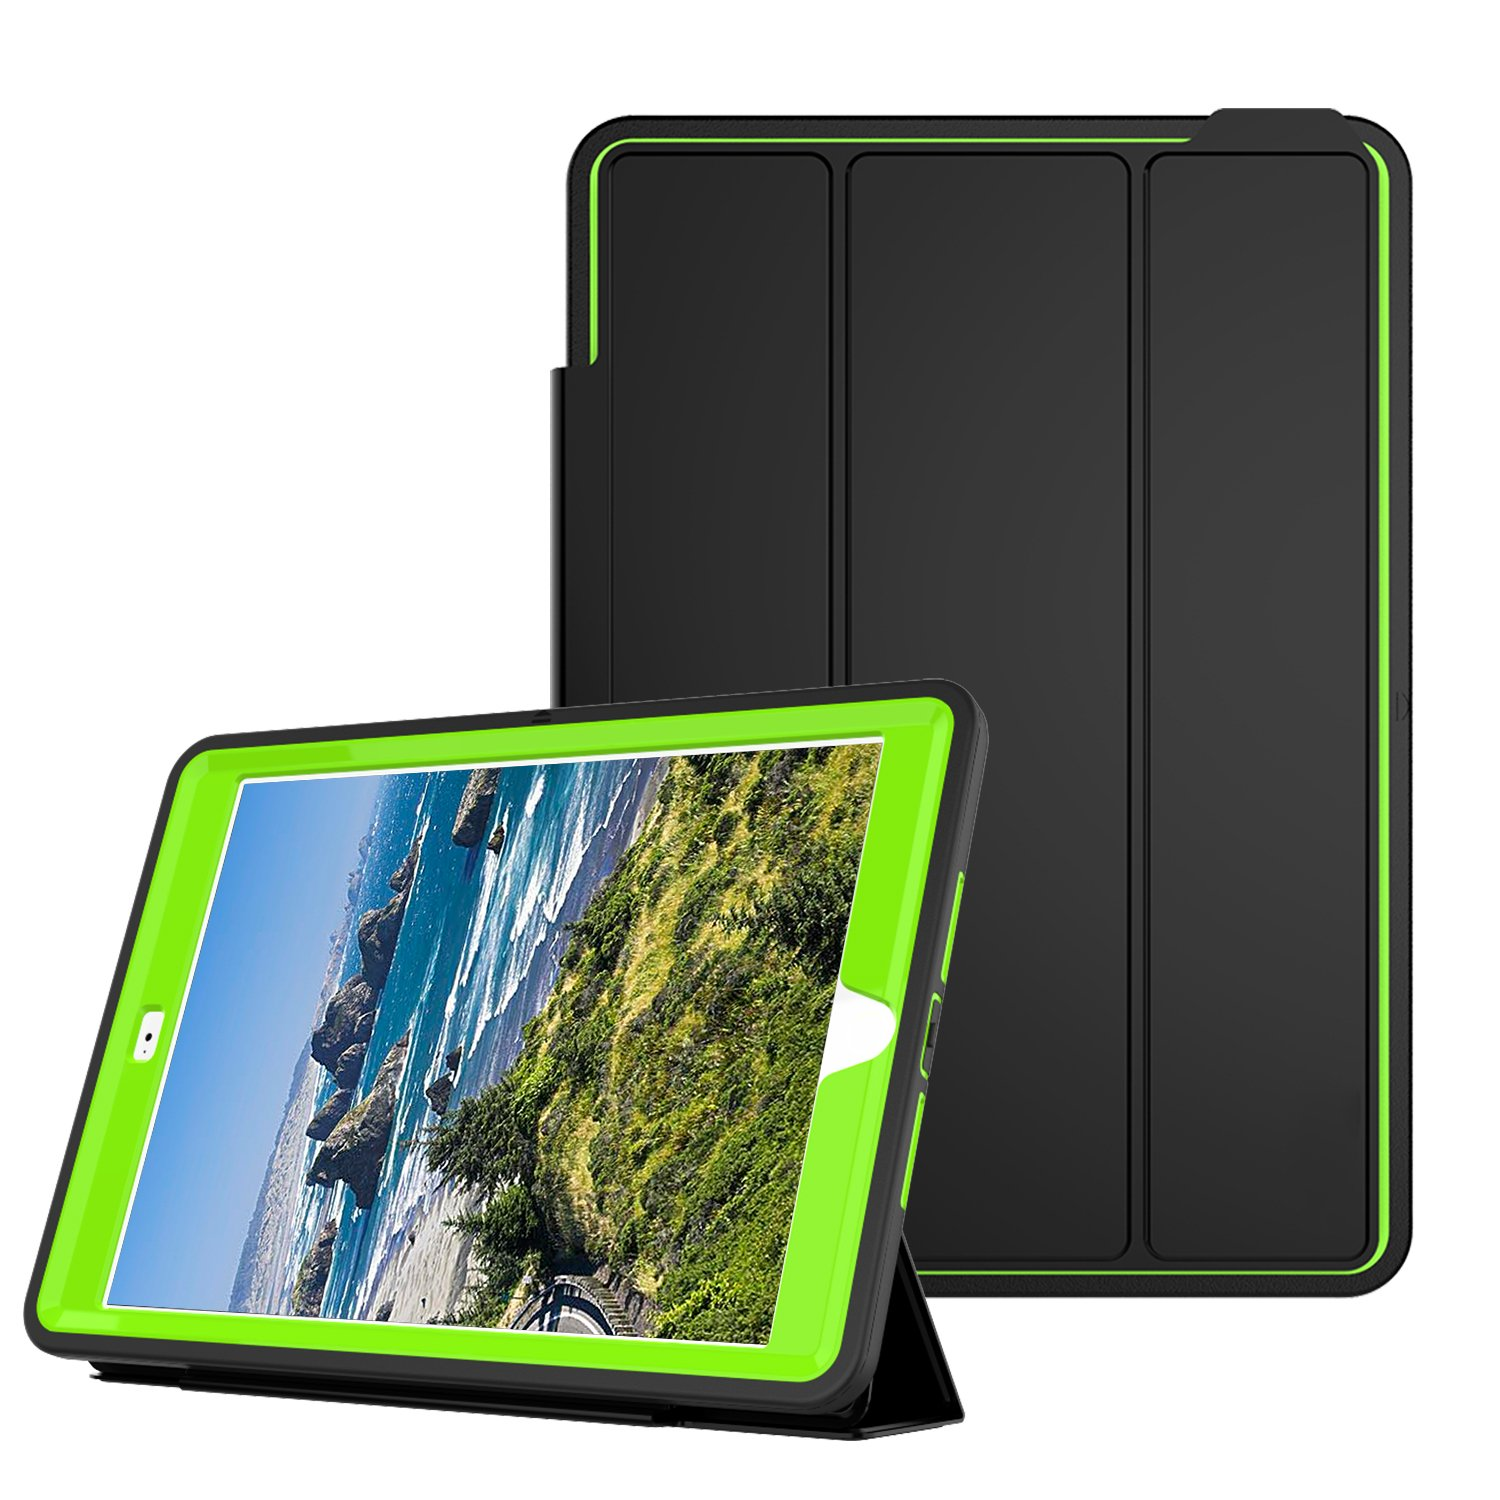 Qelus iPad Air2 Case, Three Layer Hybrid Shockproof Rugged Protective Heavy Duty with Magnetic Stand, Smart Cover Auto Wake/Sleep Protective Case Cover for Apple iPad Air 2(2014 Released),Black+Green by Qelus (Image #1)